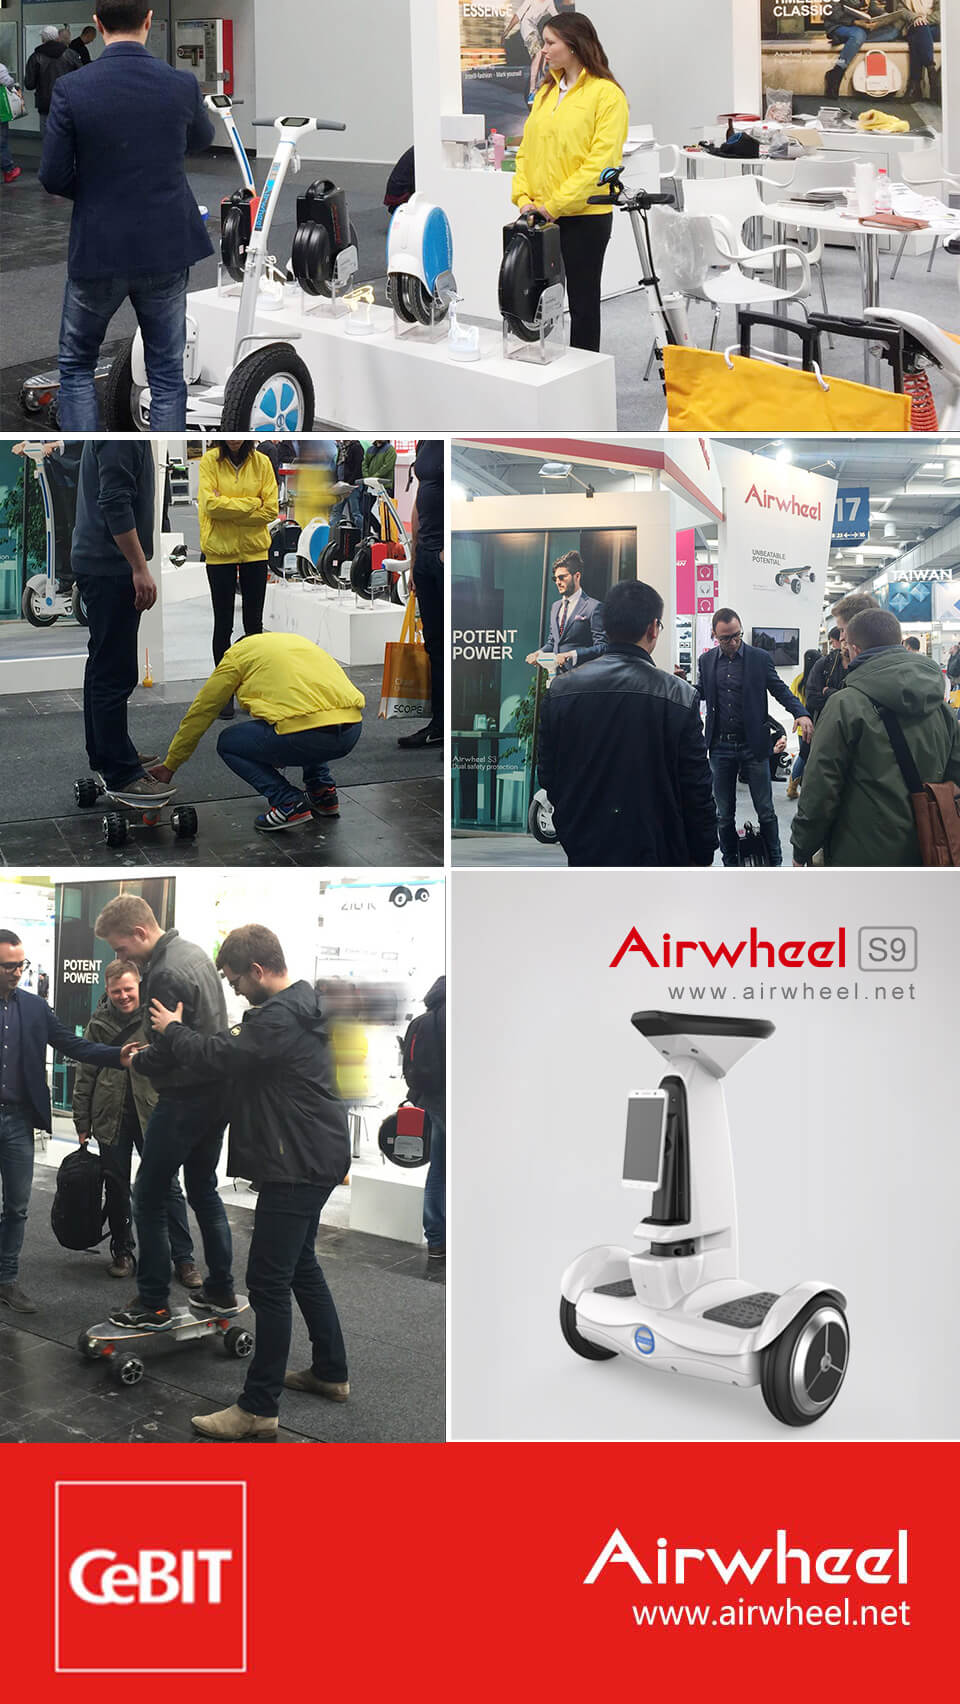 Airwheel S9 artificial intelligence robots